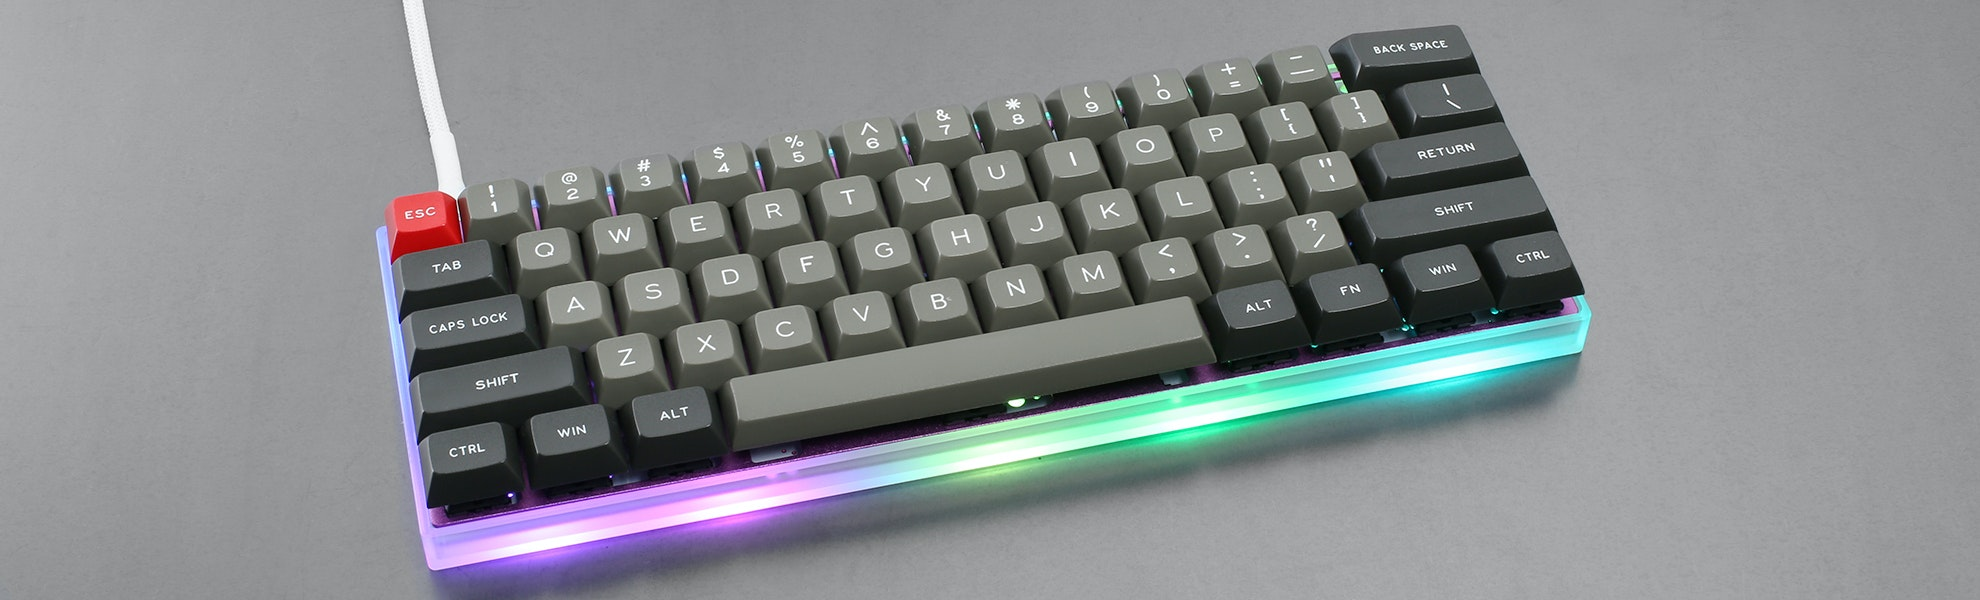 Sentraq Acrylic 60% Keyboard Case